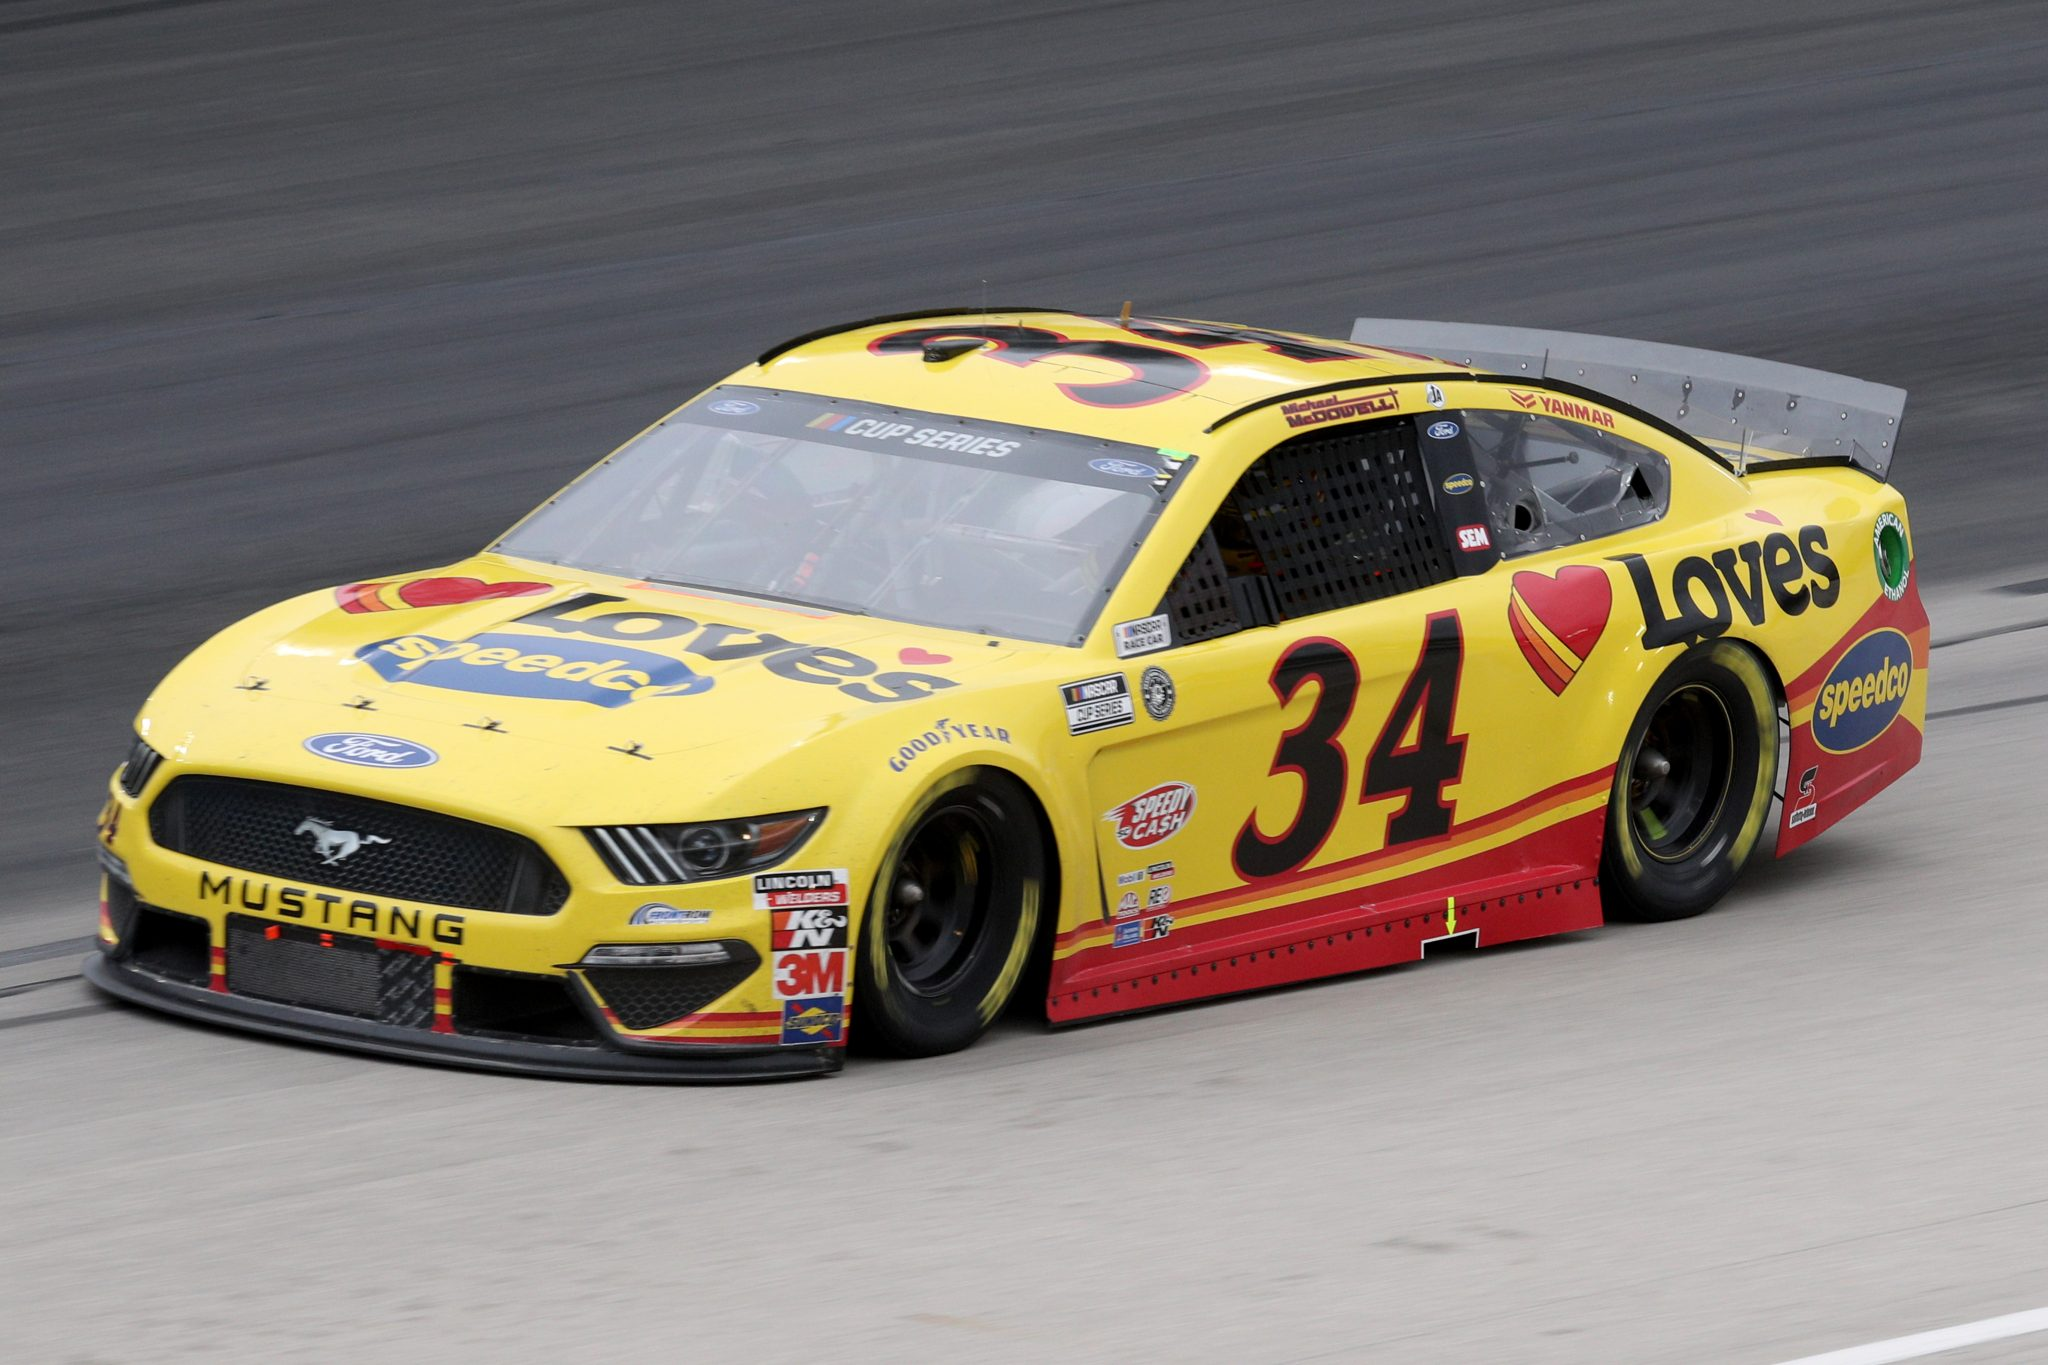 FORT WORTH, TEXAS - OCTOBER 28: Michael McDowell, driver of the #34 Love's Travel Stops Ford, drives during the NASCAR Cup Series Autotrader EchoPark Automotive 500 at Texas Motor Speedway on October 28, 2020 in Fort Worth, Texas. (Photo by Chris Graythen/Getty Images)   Getty Images